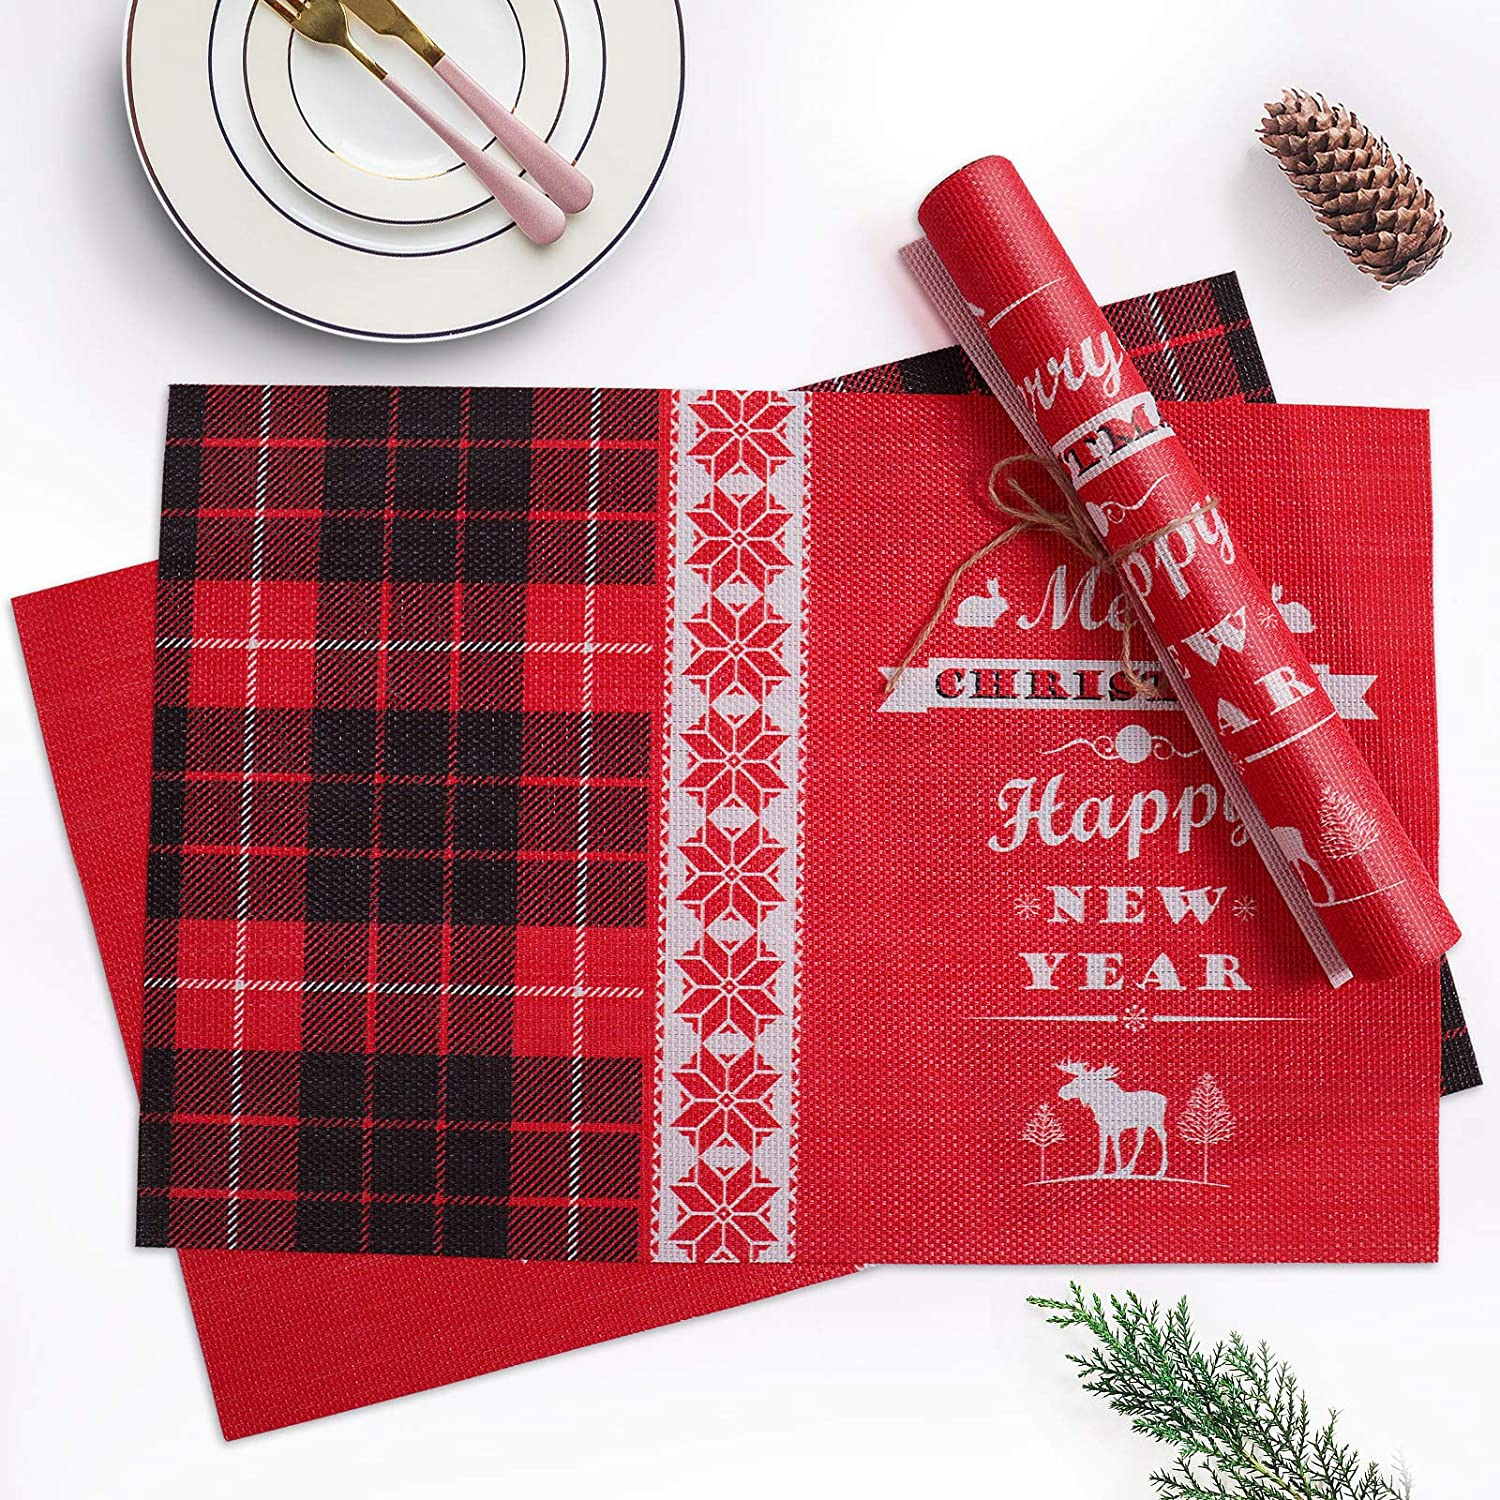 Amazon Com Christmas Placemats Set Of 4 Red Black Buffalo Plaid Decorations Place Mats For Dining Table Washable Xmas New Year Kitchen Size 11 8 17 7 Inch